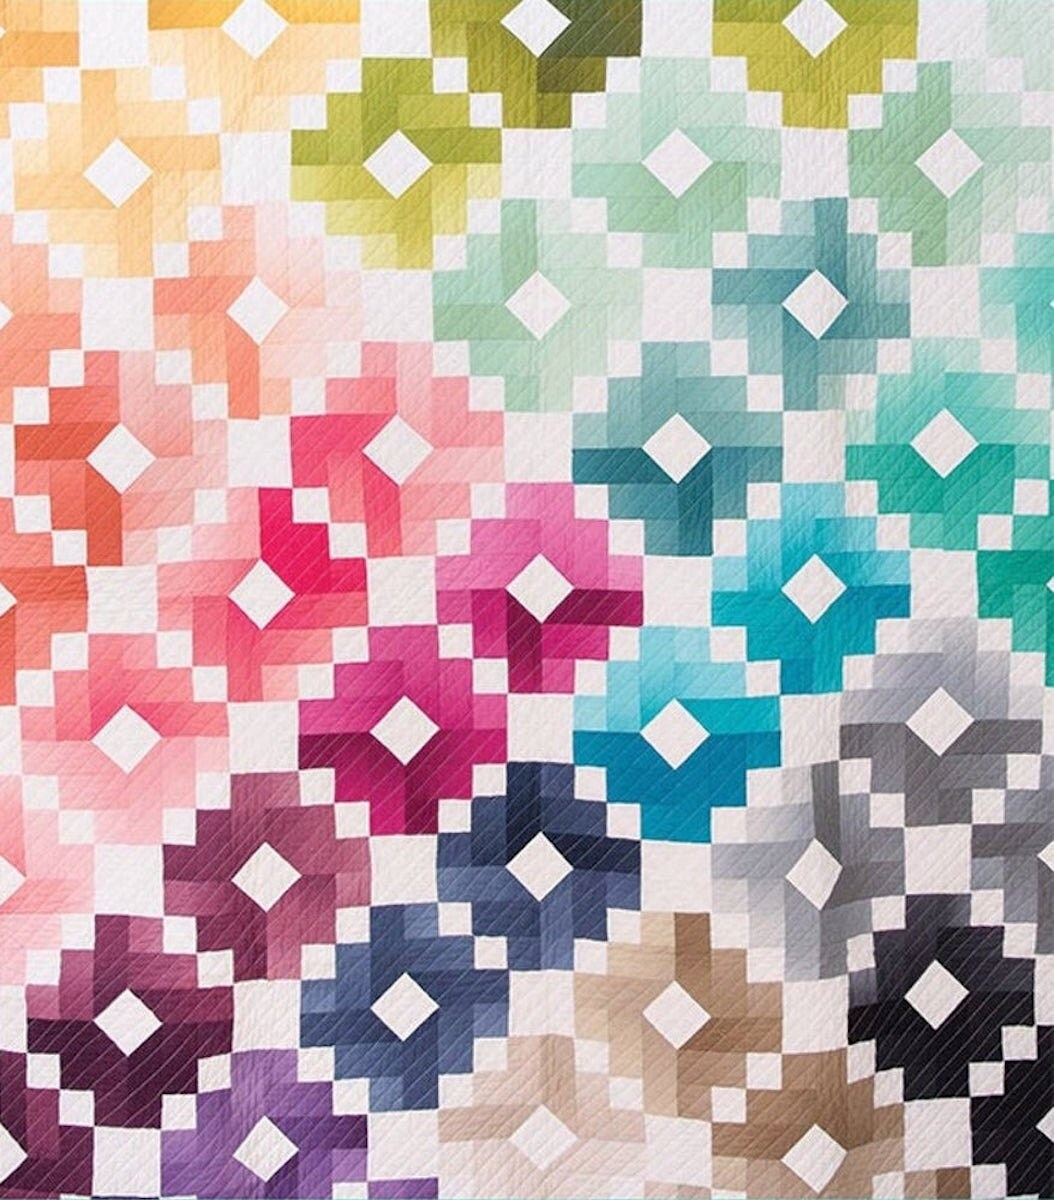 An ombré quilt kit from Etsy